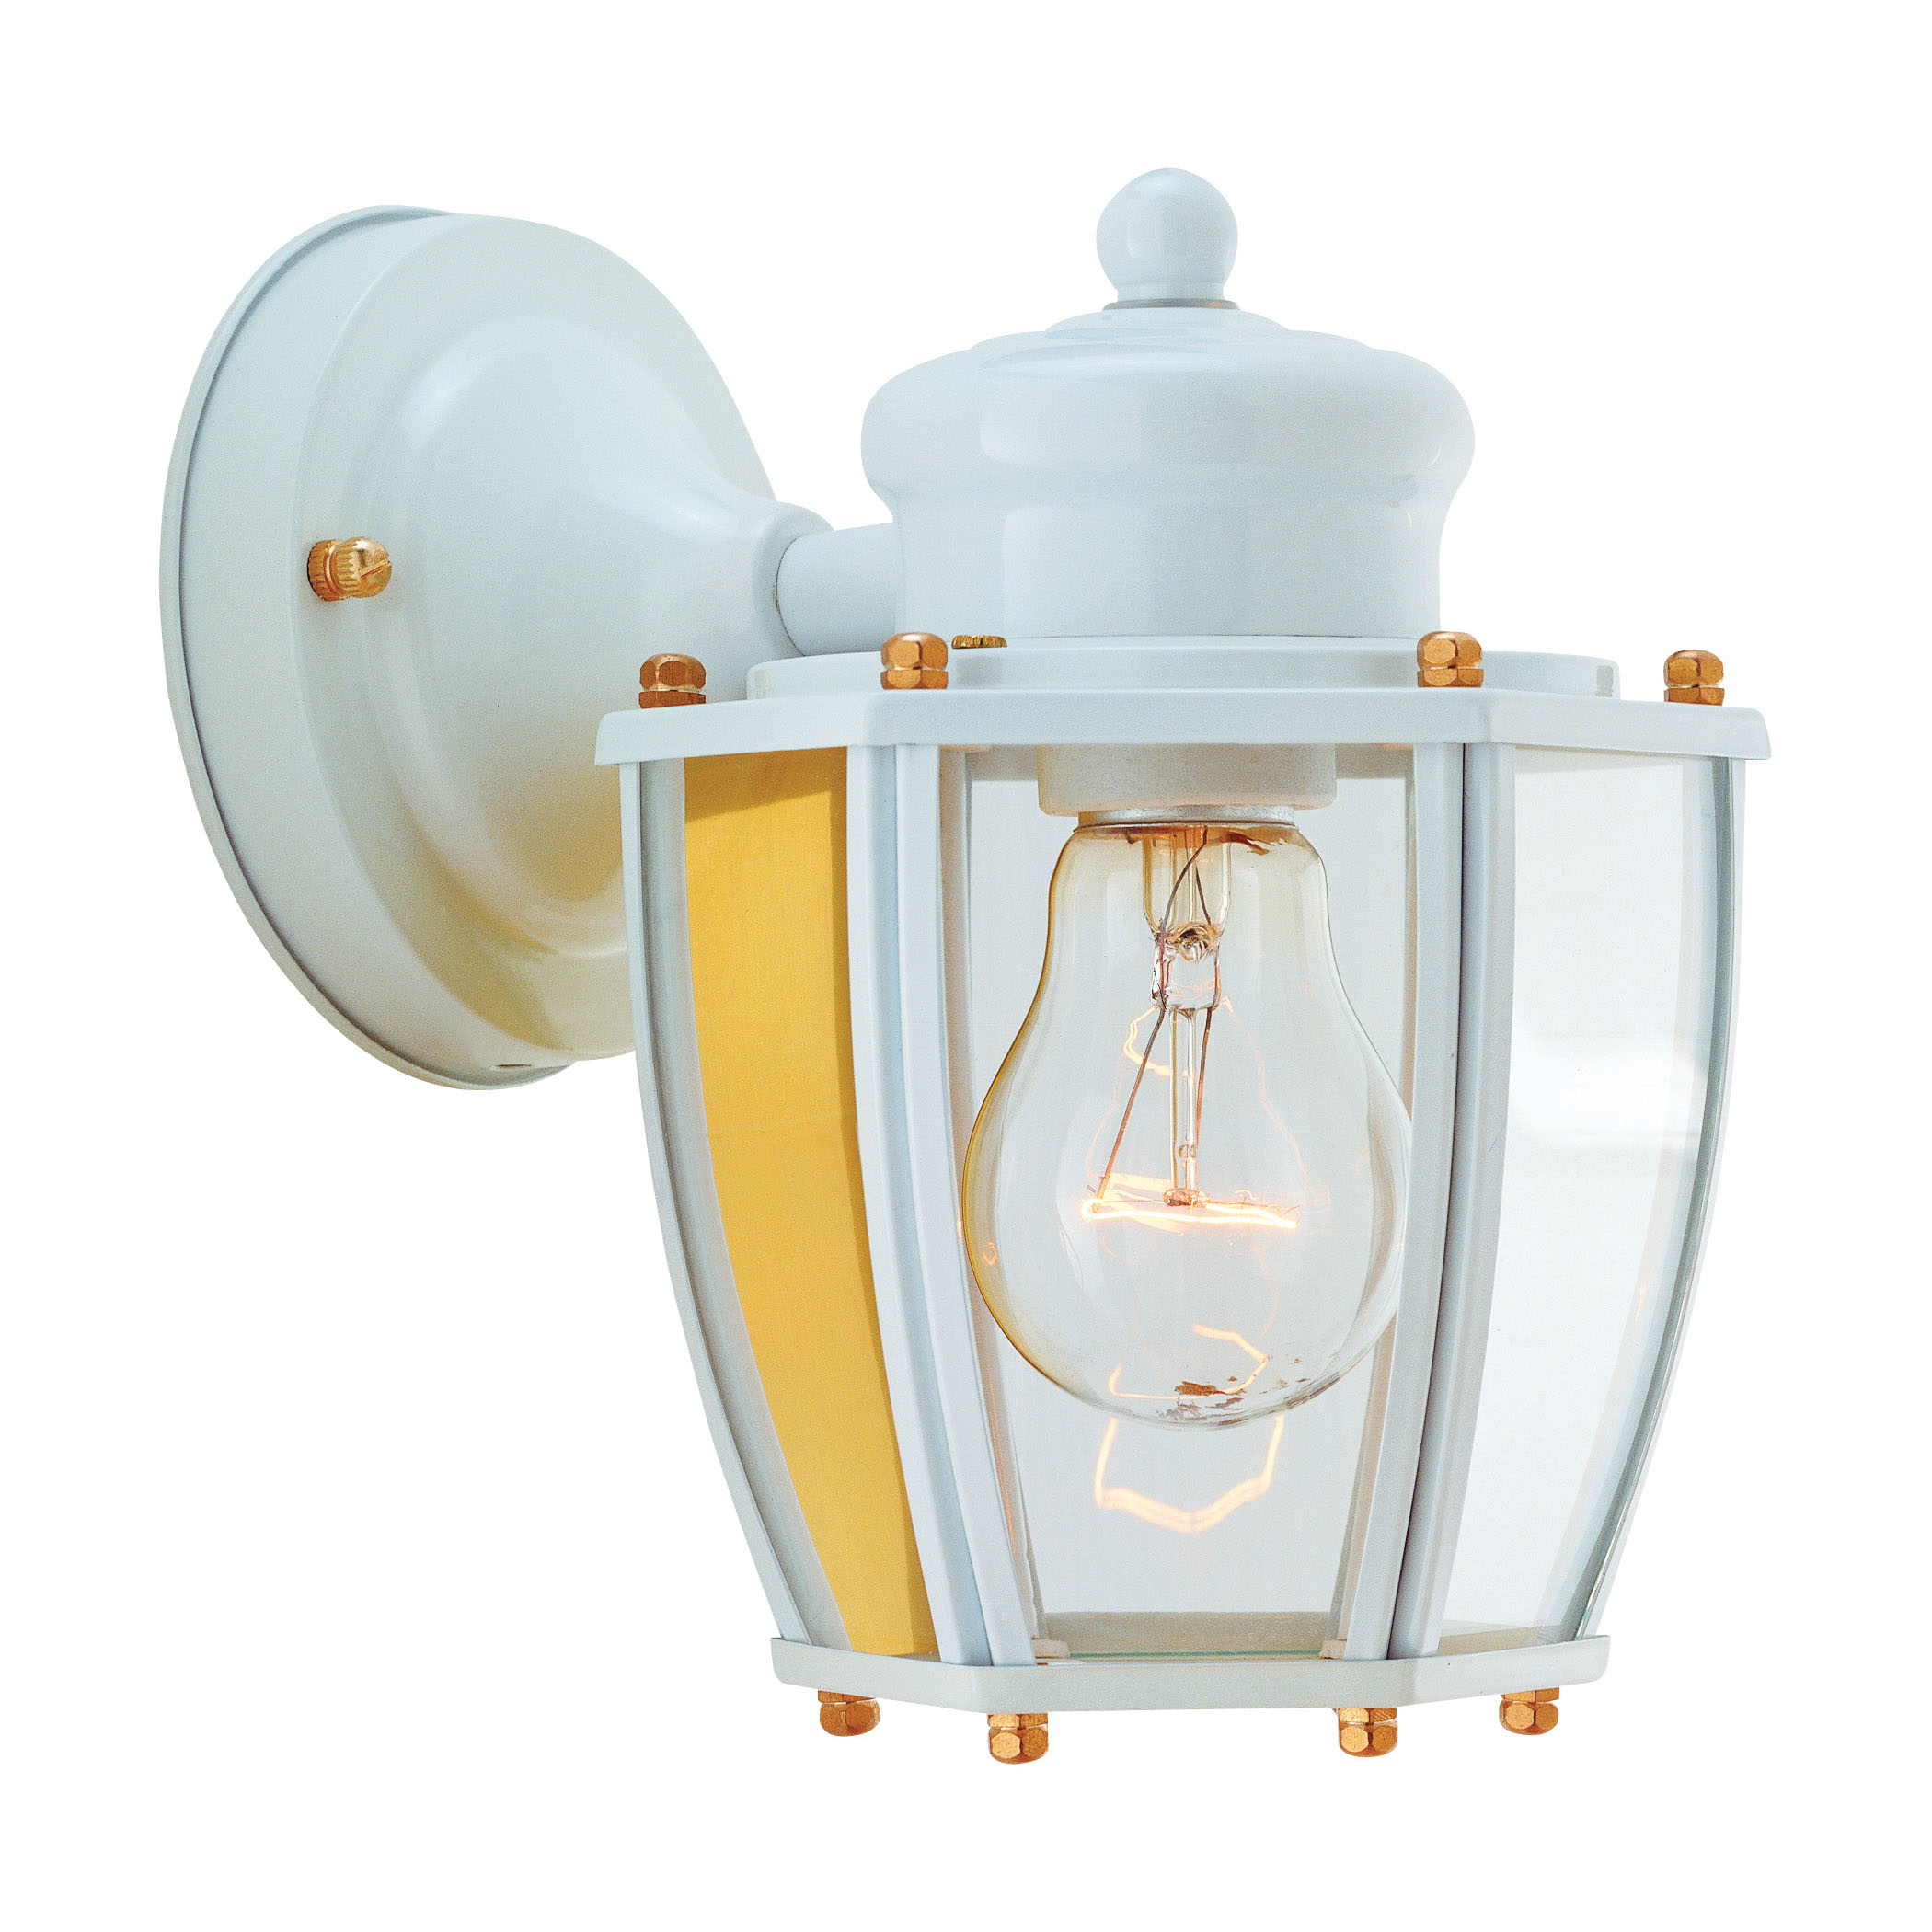 Picture of Boston Harbor HV-66961-WH Porch Light Fixture, CFL Lamp, Steel Fixture, White